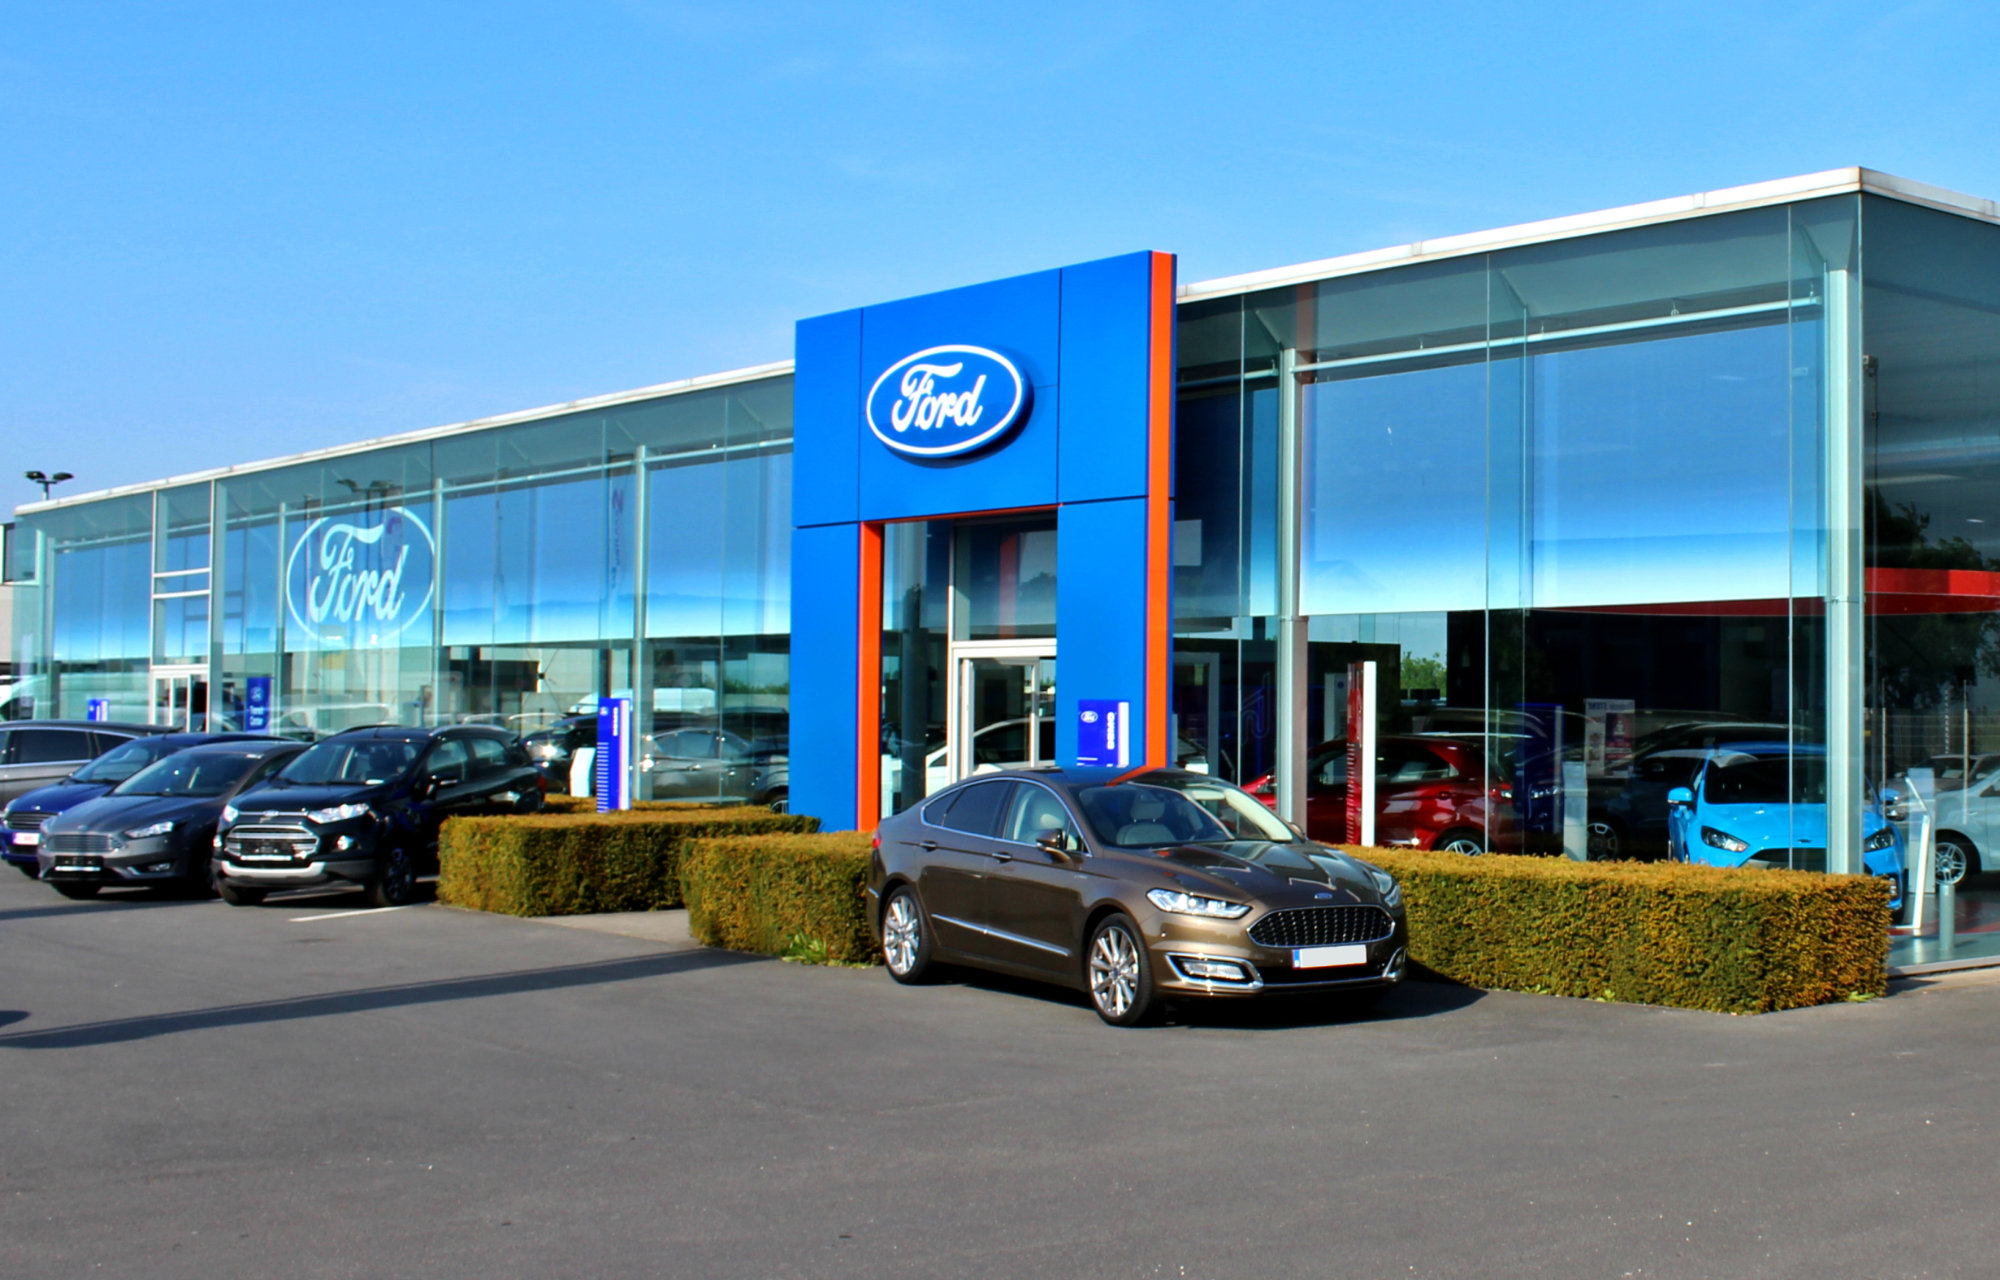 Unicars FordStore